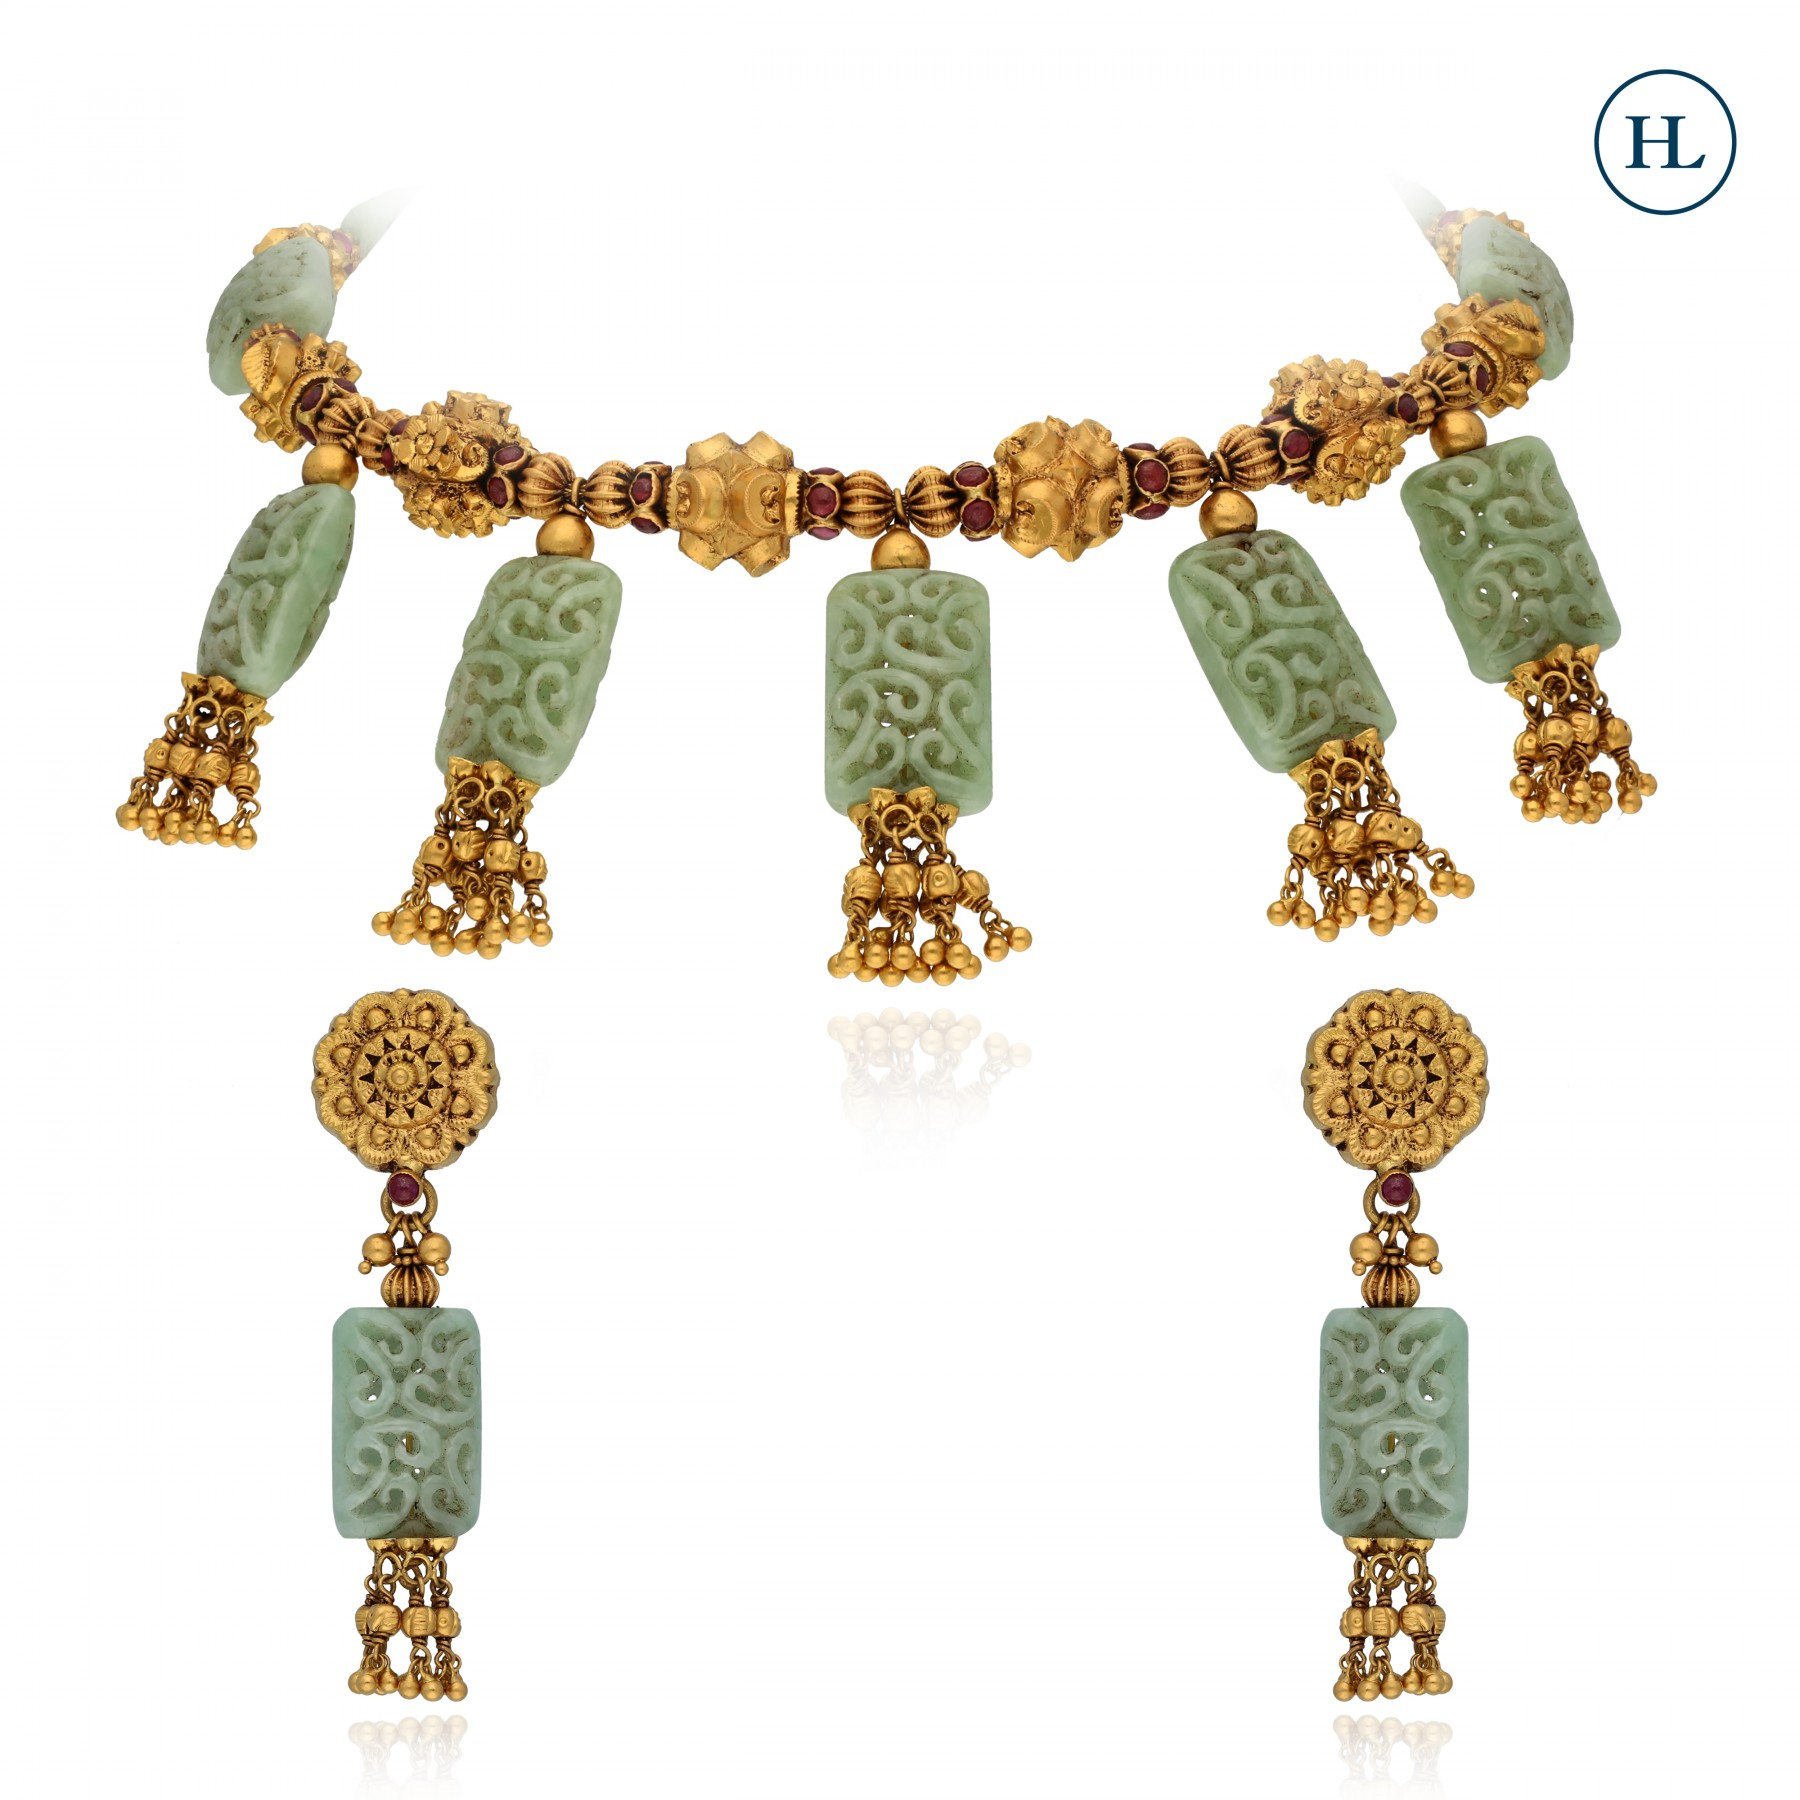 Antique-Styled Gold & Jade Necklace Set